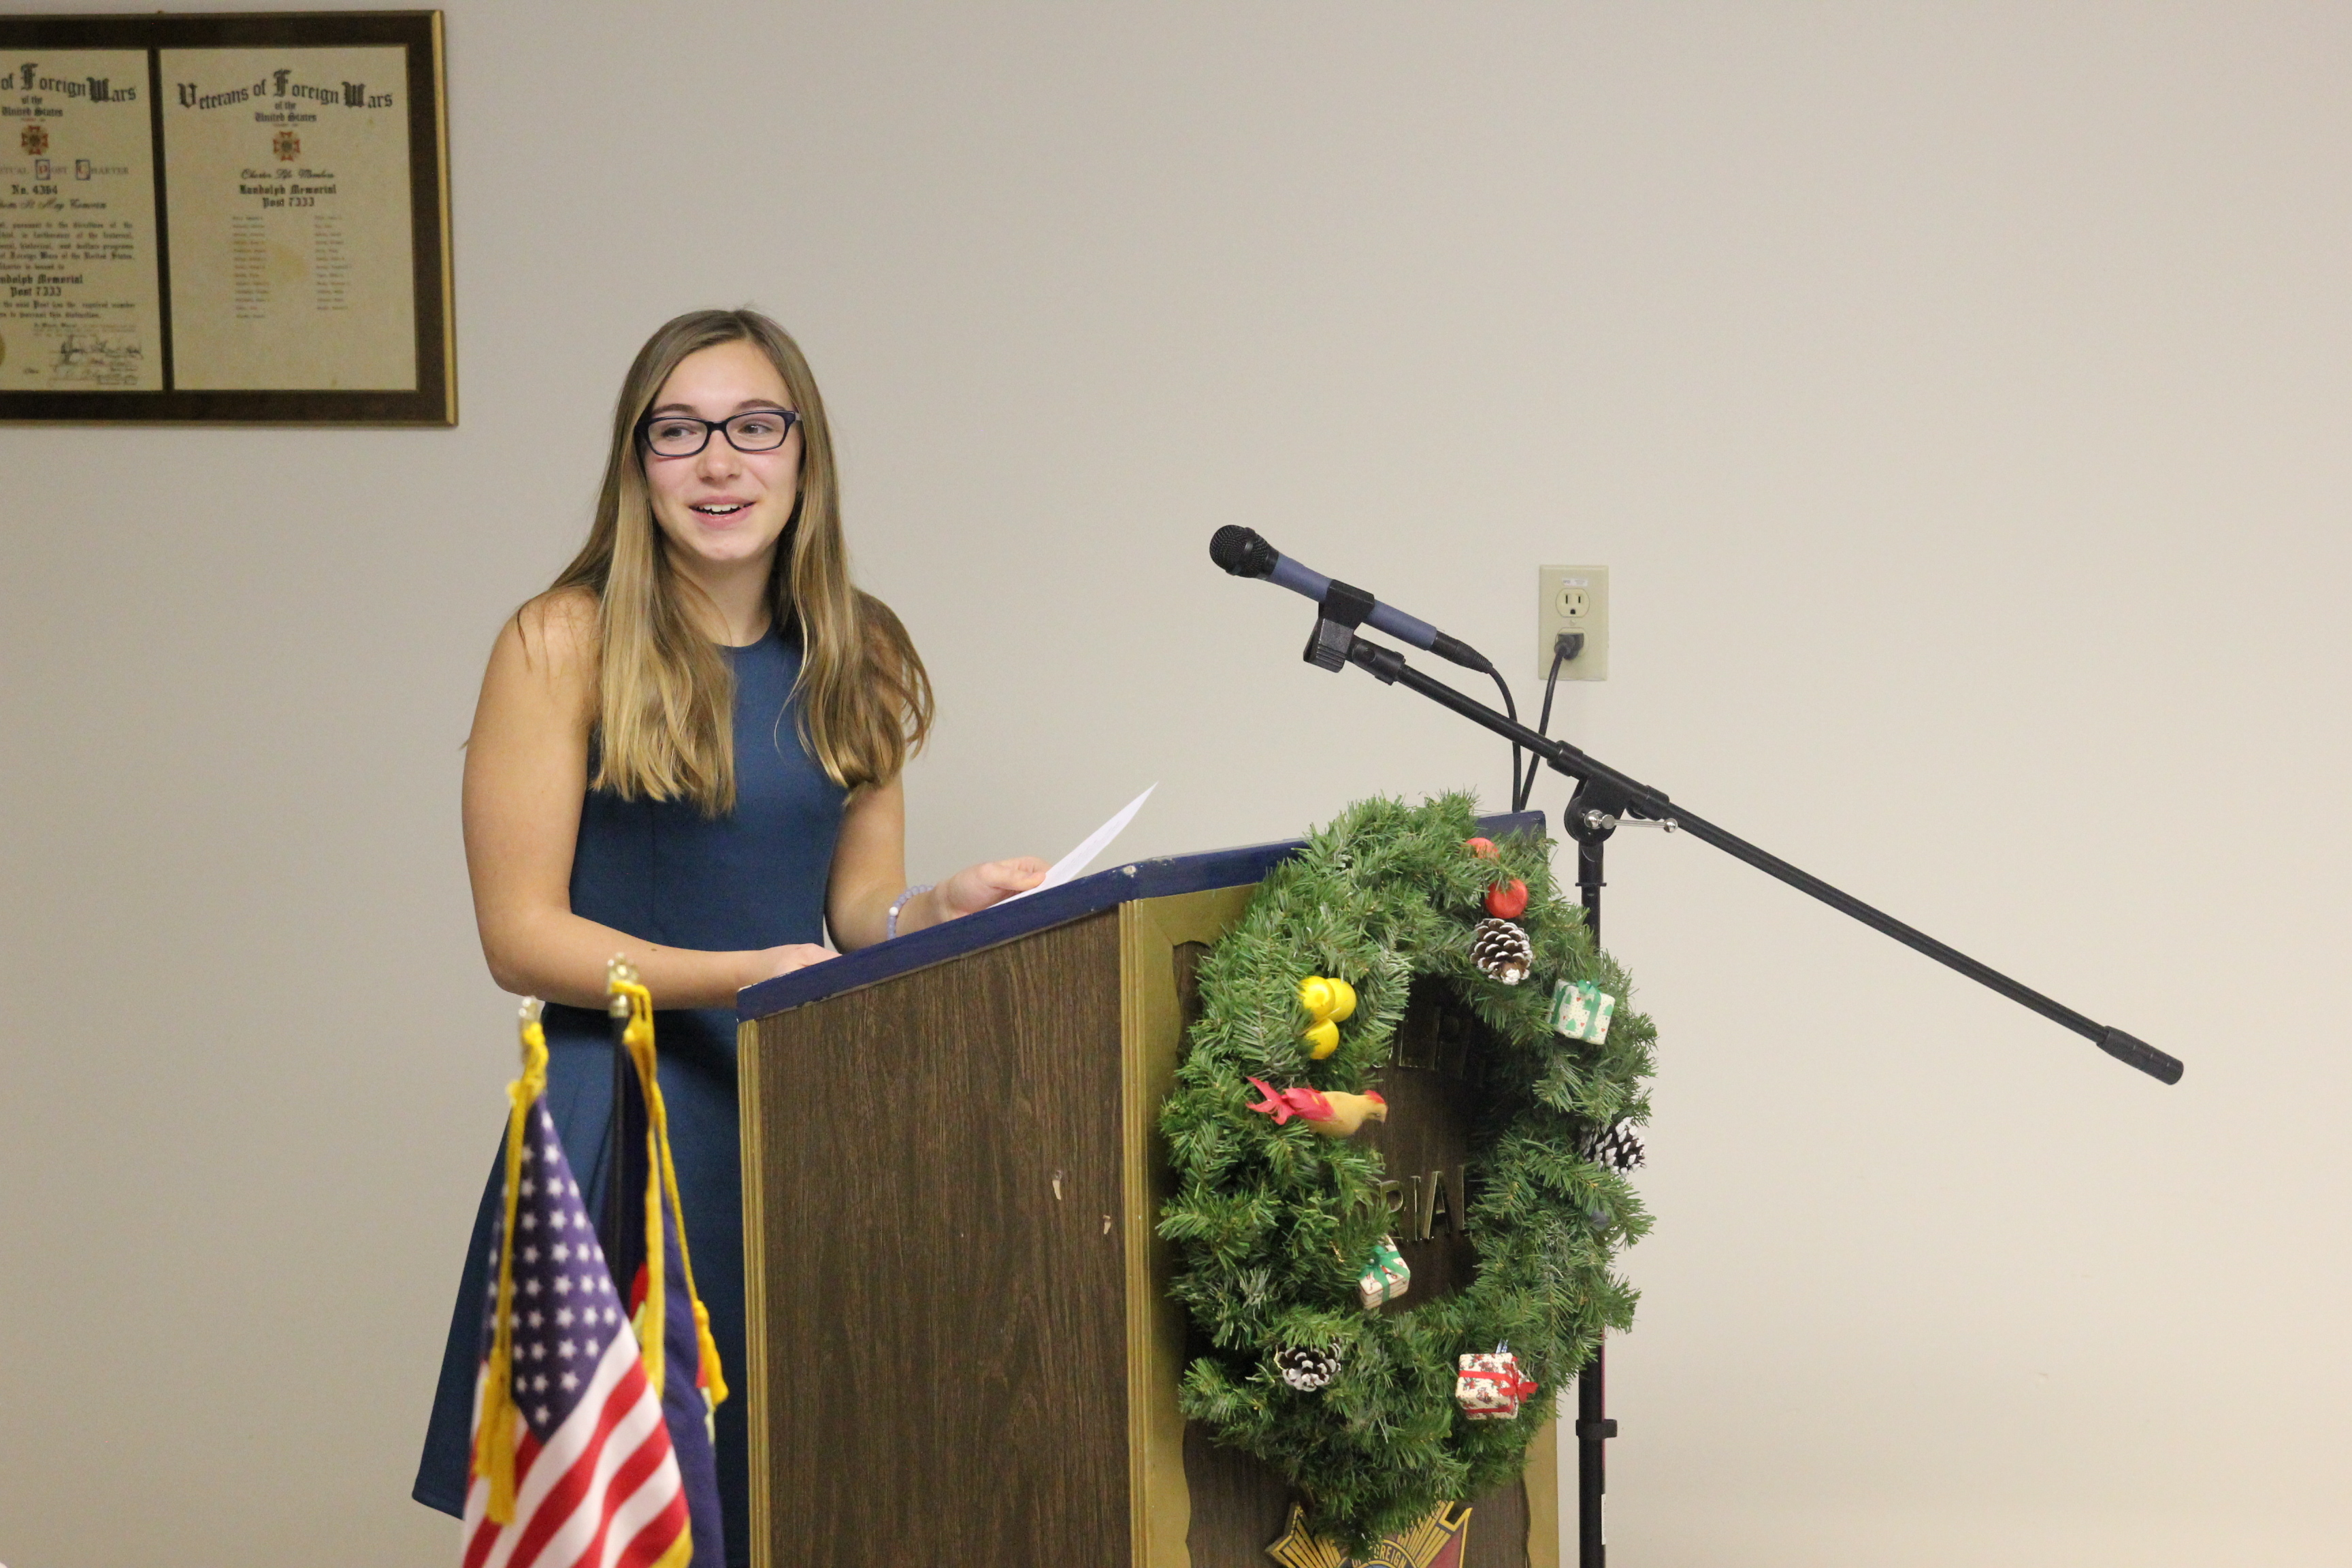 patriotism essay contest six randolph students earn scholarships from vfw for patriotic essay contest six randolph students earn scholarships from vfw for patriotic essay contest